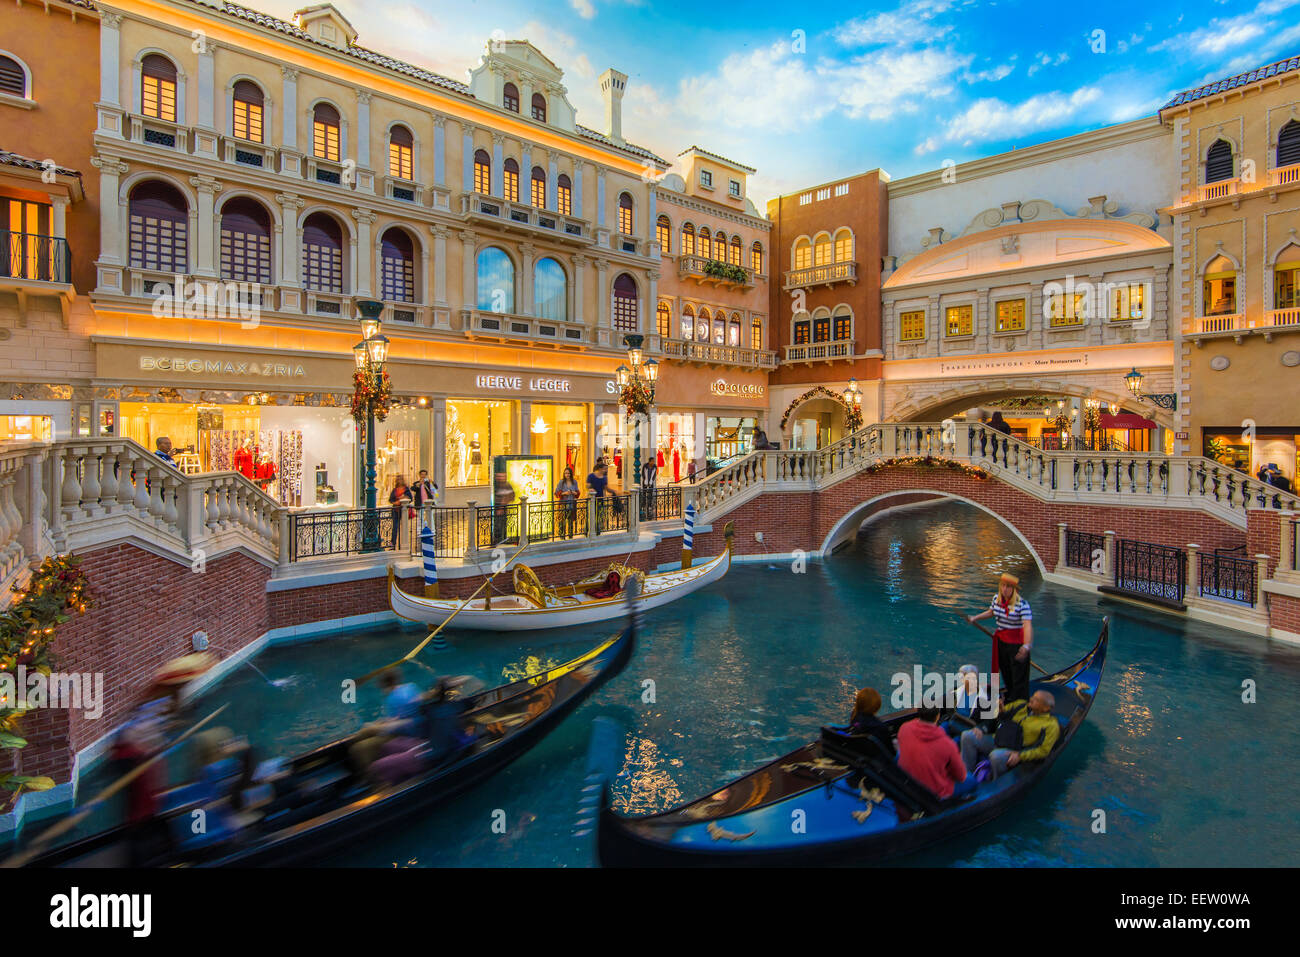 Grand Canal Shoppes Pictures To Pin On Pinterest PinsDaddy - Map of las vegas venetian